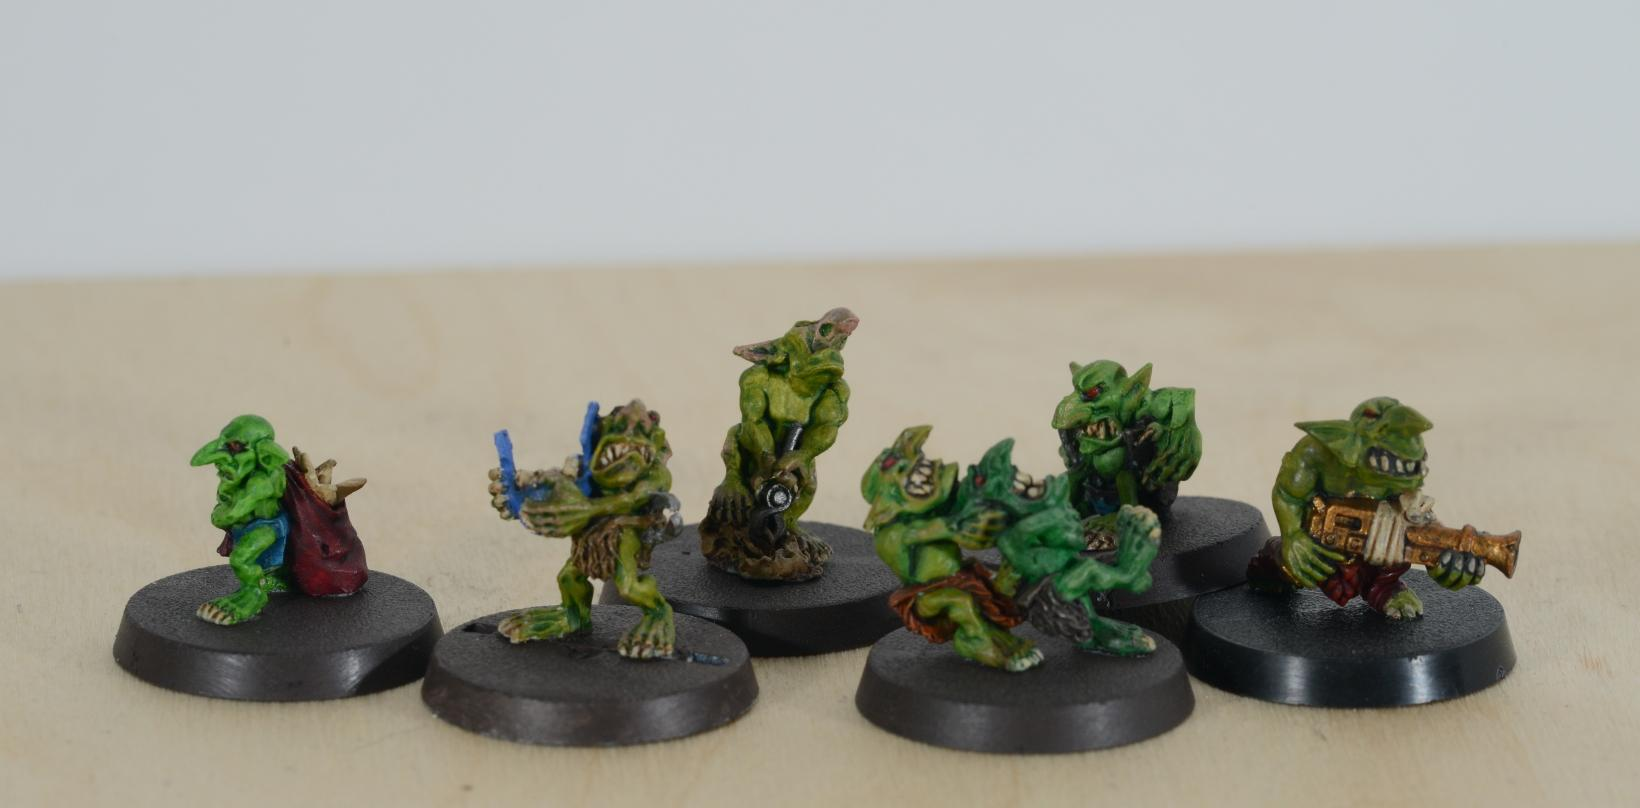 Bits, Grots, Orks, Thieving Grots